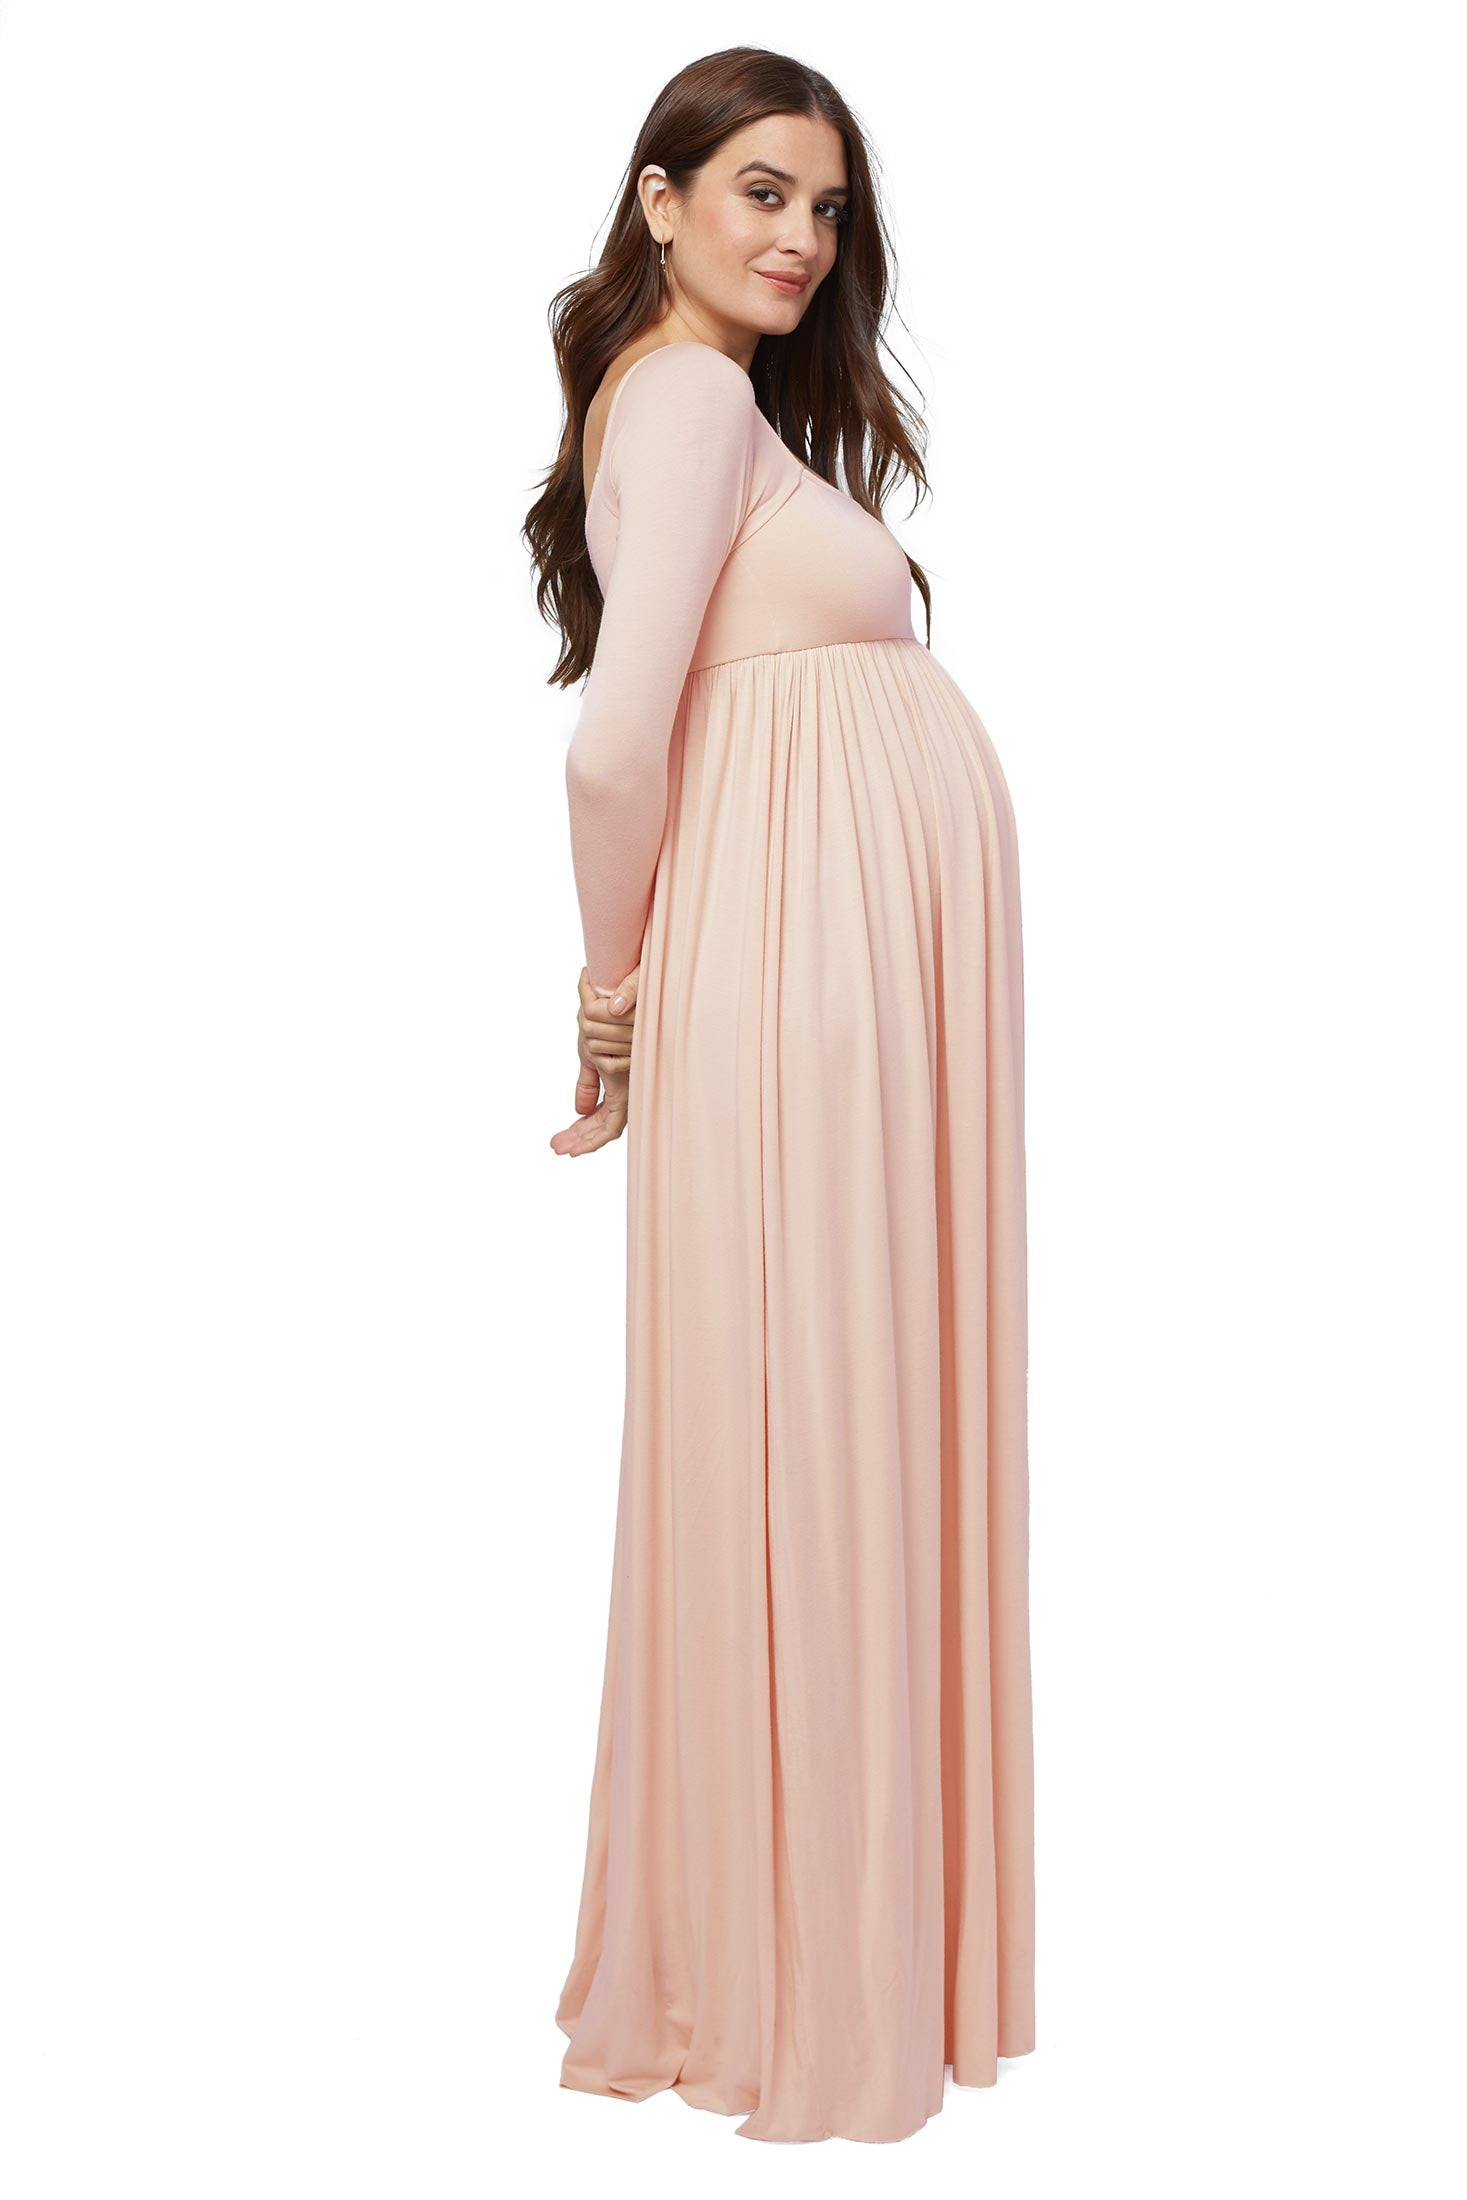 Jersey knit maternity dresses tops rachel pally isa dress divine maternity ombrellifo Choice Image